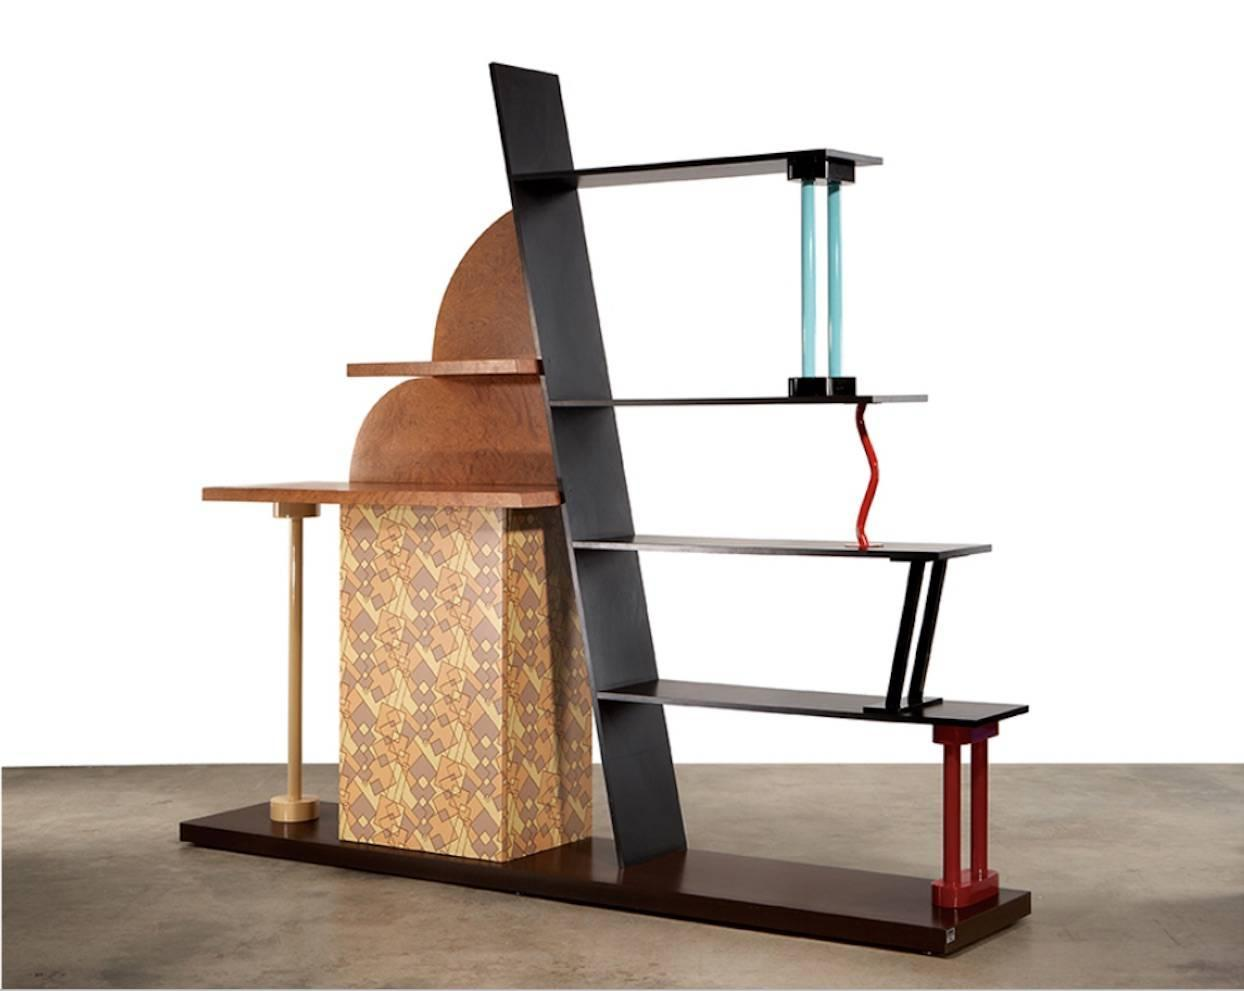 malabar sideboard by ettore sottsass 1982 for sale at 1stdibs. Black Bedroom Furniture Sets. Home Design Ideas